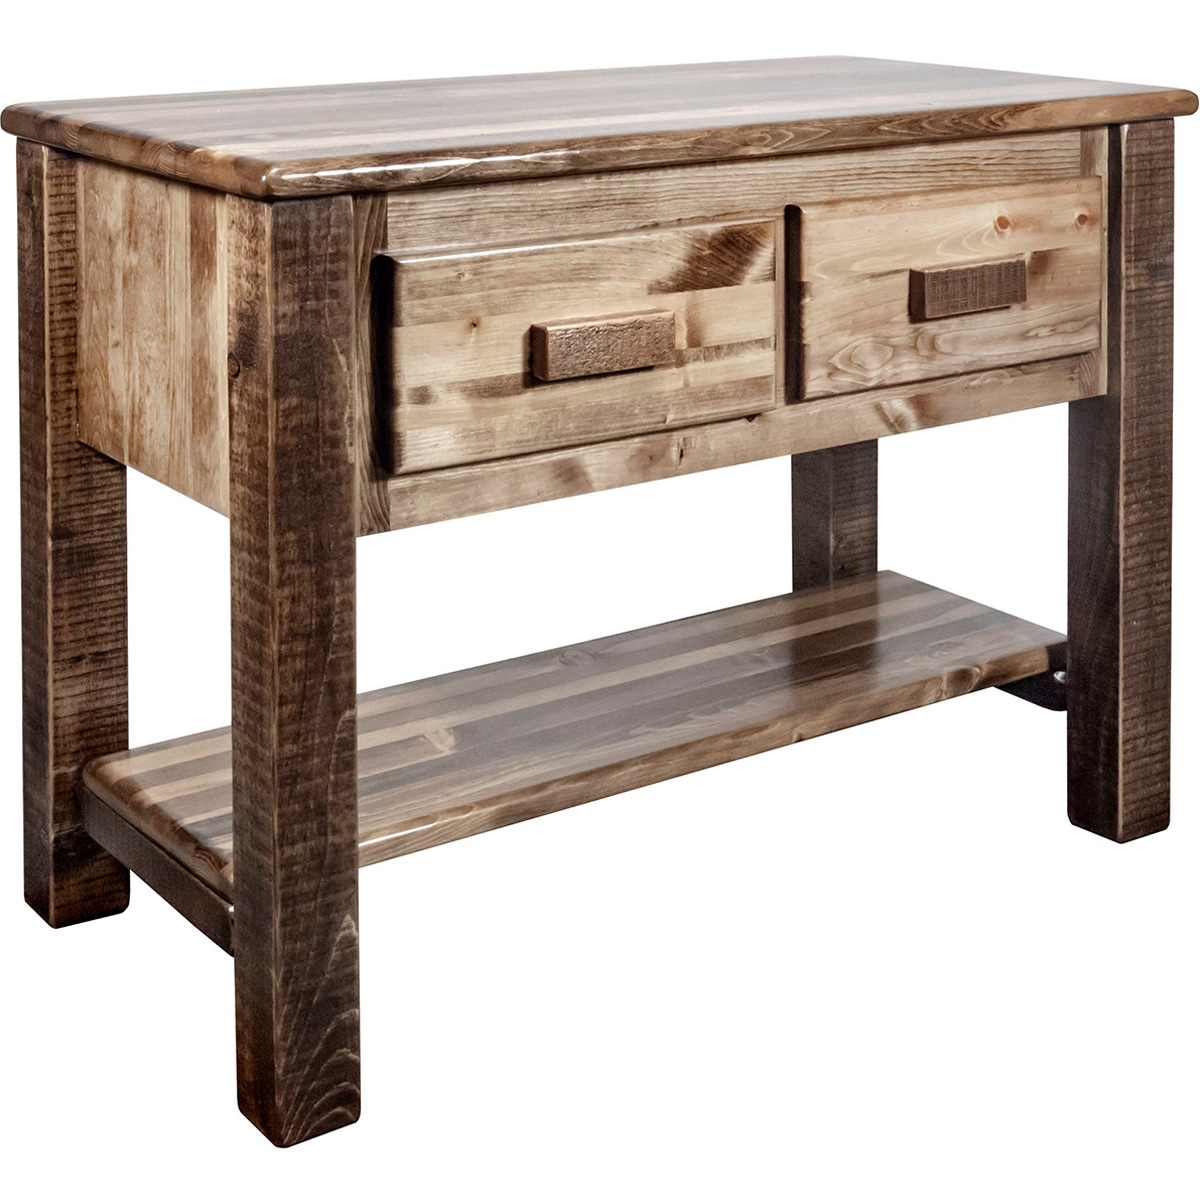 Ranchman's Console Table with 2 Drawers, Stain & Clear Lacquer Finish